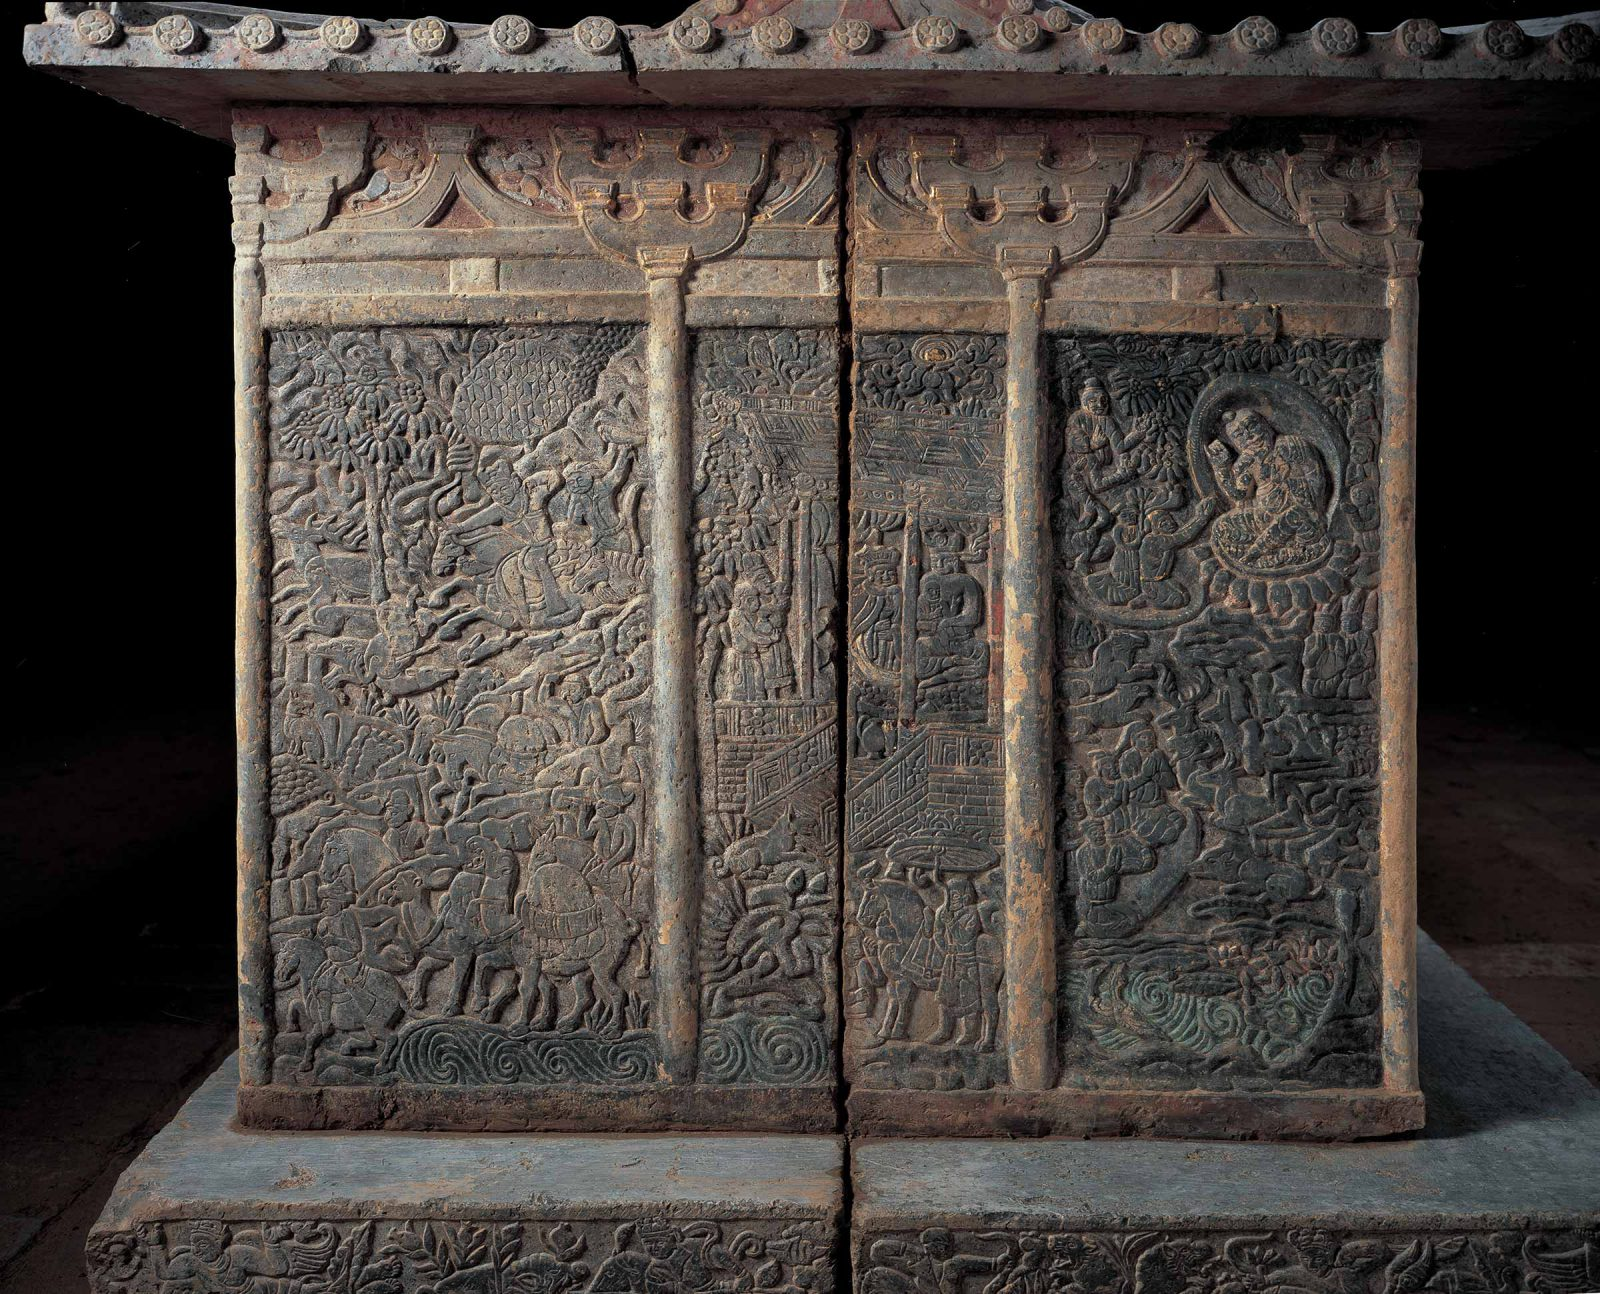 Carved frieze of scenes from heaven